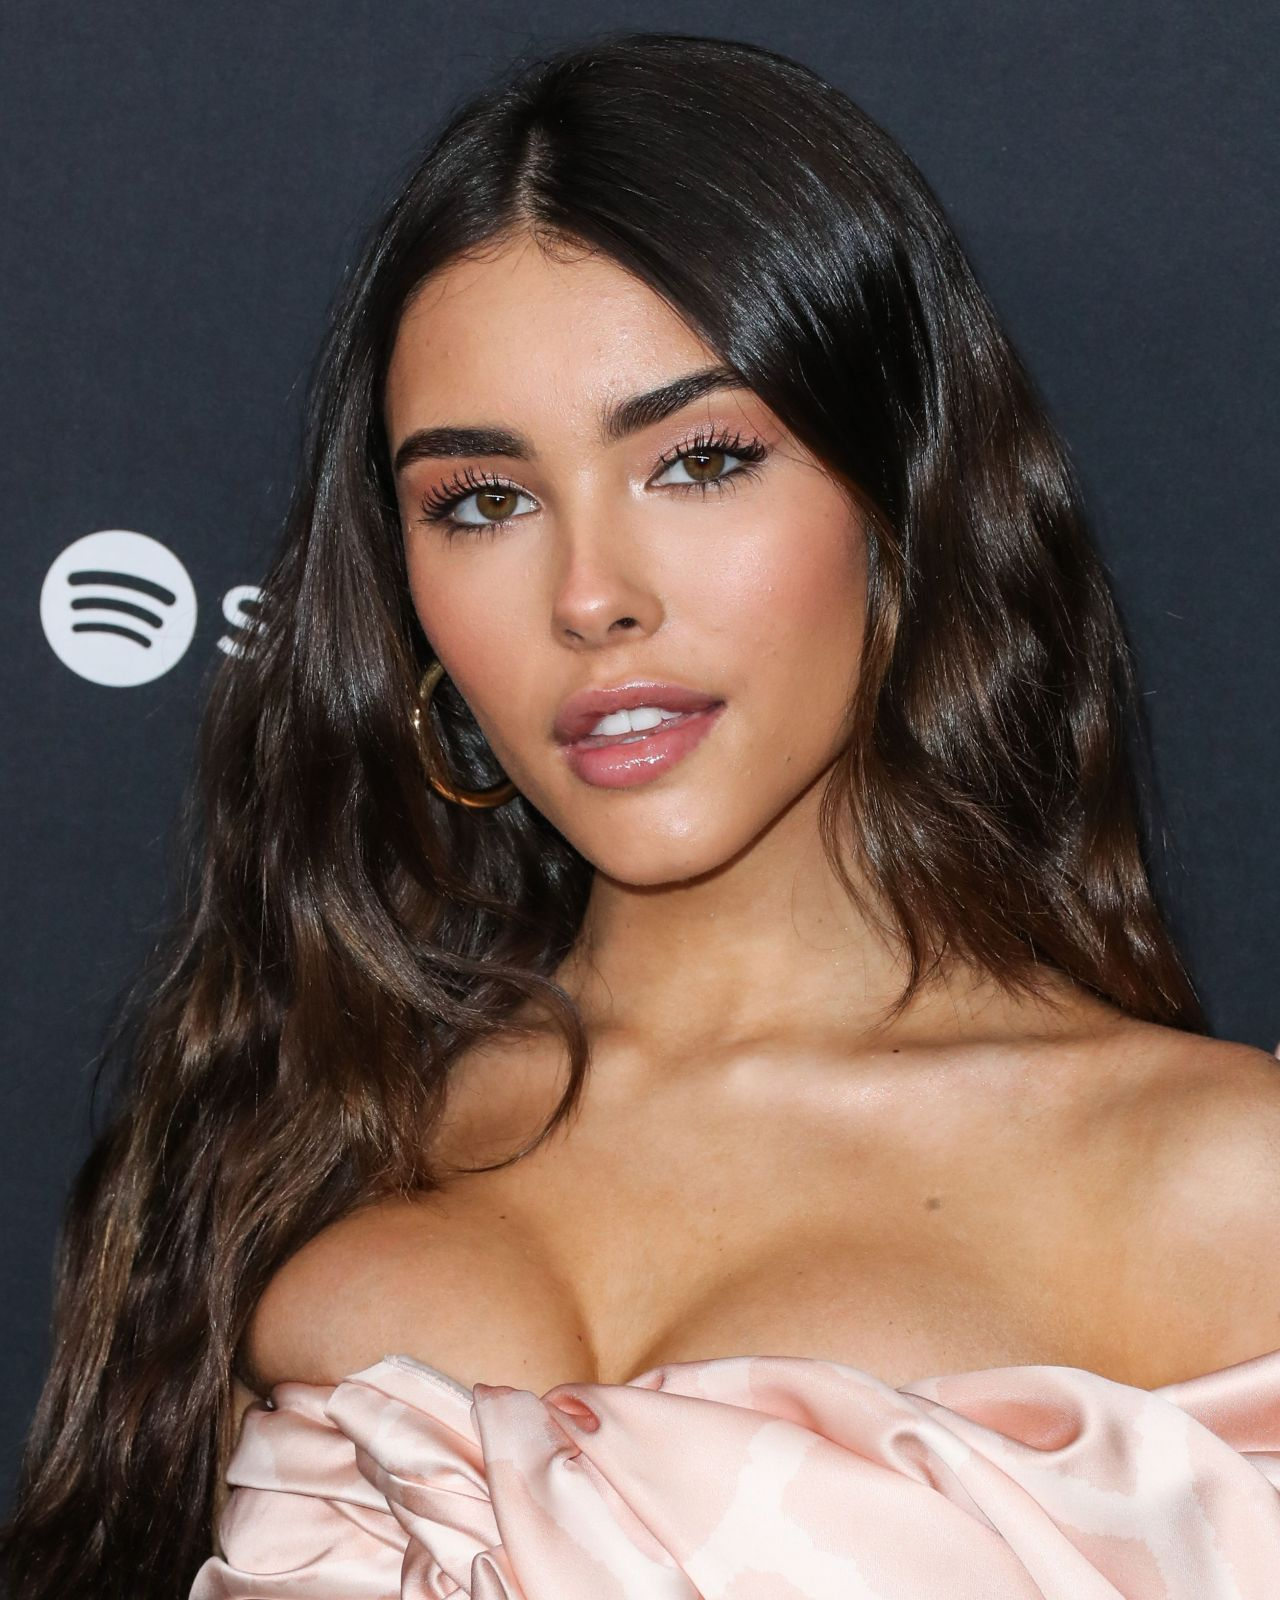 Madison Beer Spotify Best New Artist 2020 Party at The